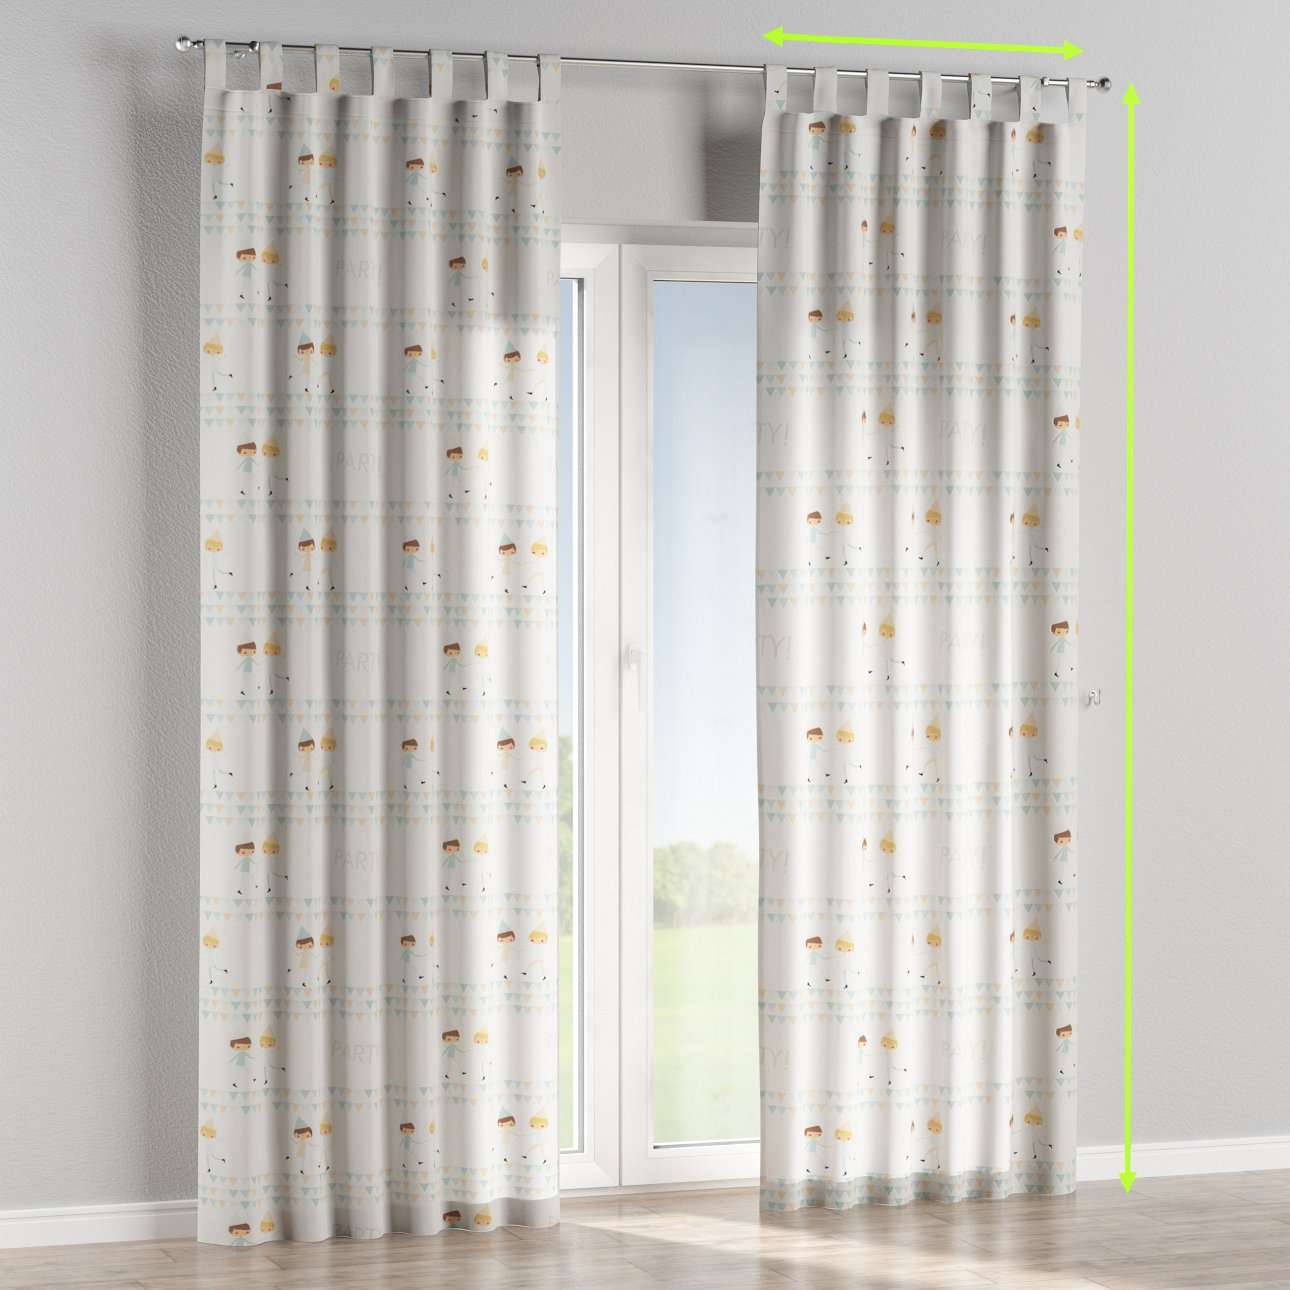 Tab top lined curtains in collection Apanona, fabric: 151-01